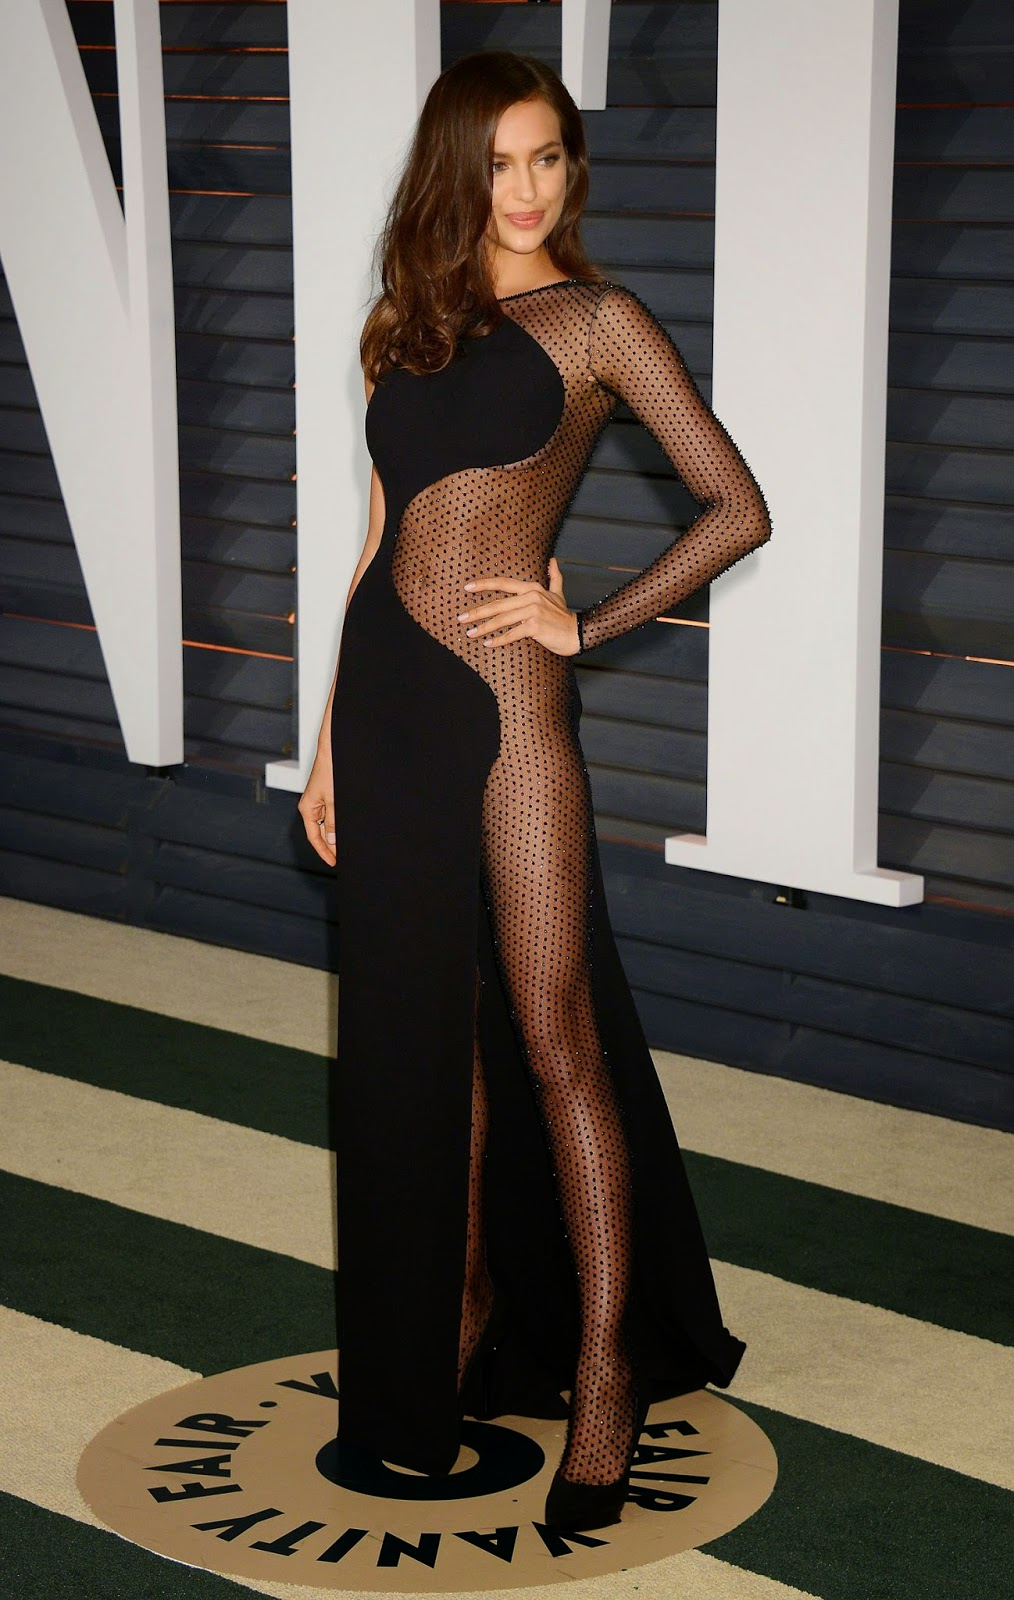 Irina Shayk at 2015 Vanity Fair Oscar Party in Hollywood